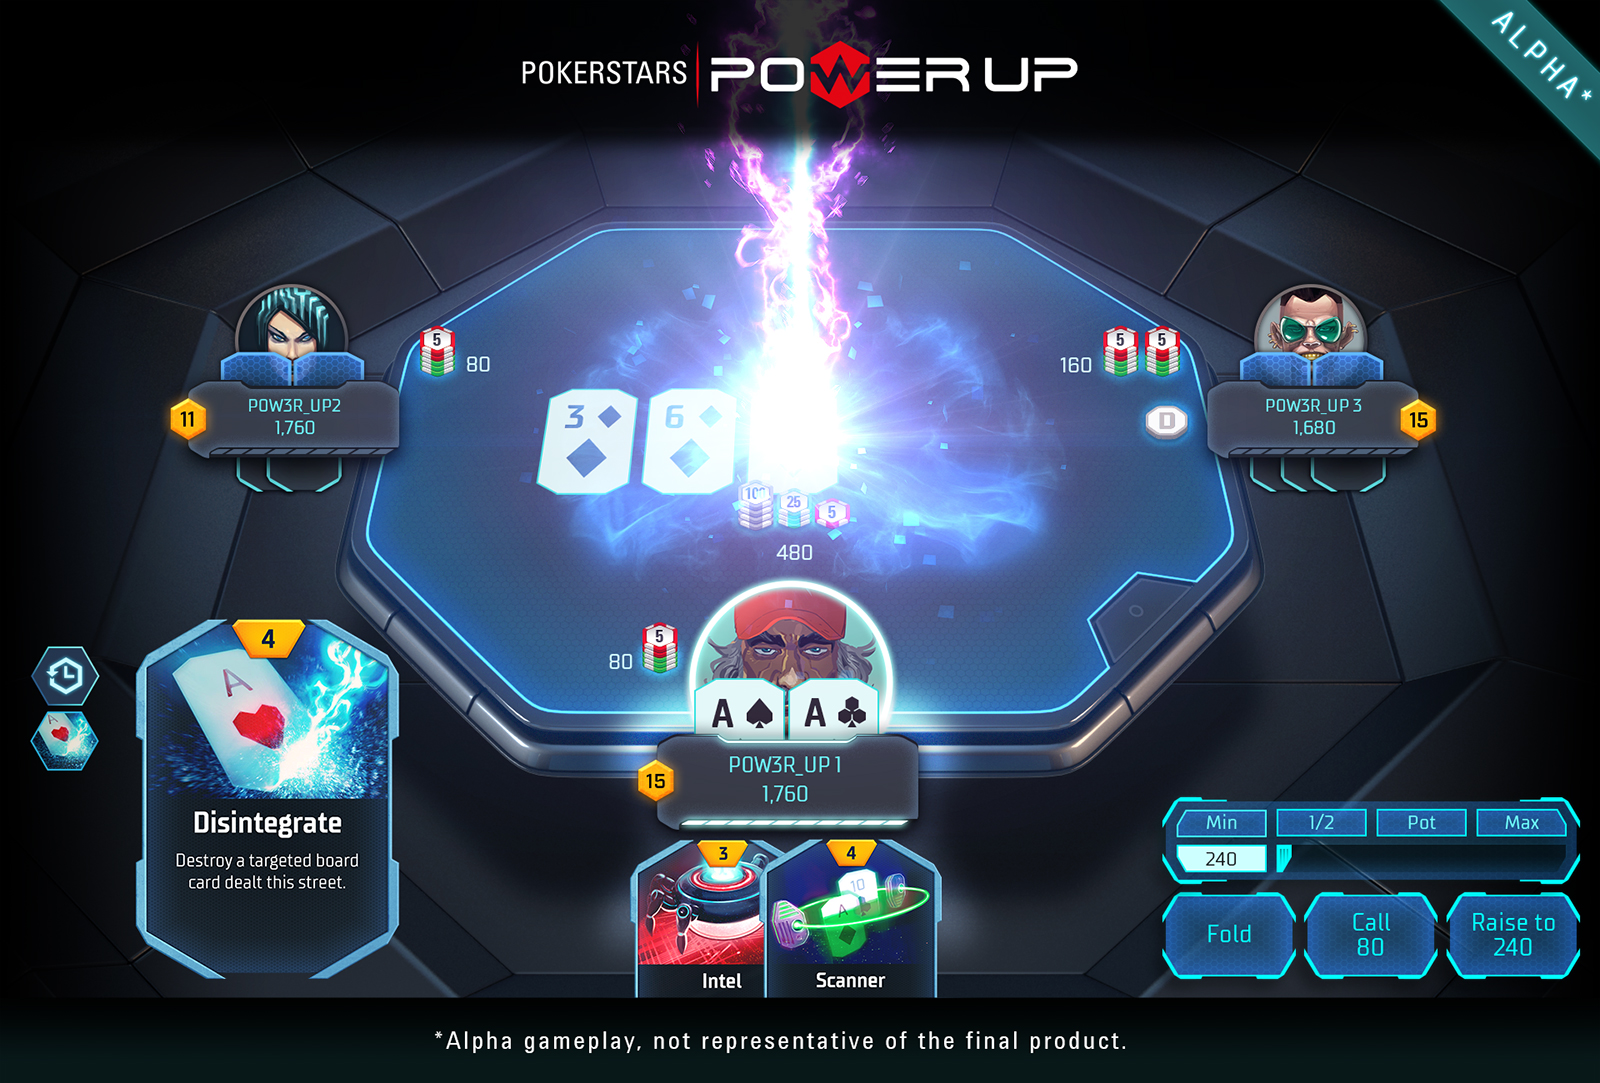 PokerStars 'Power Up' Now Live for Real-Money Play